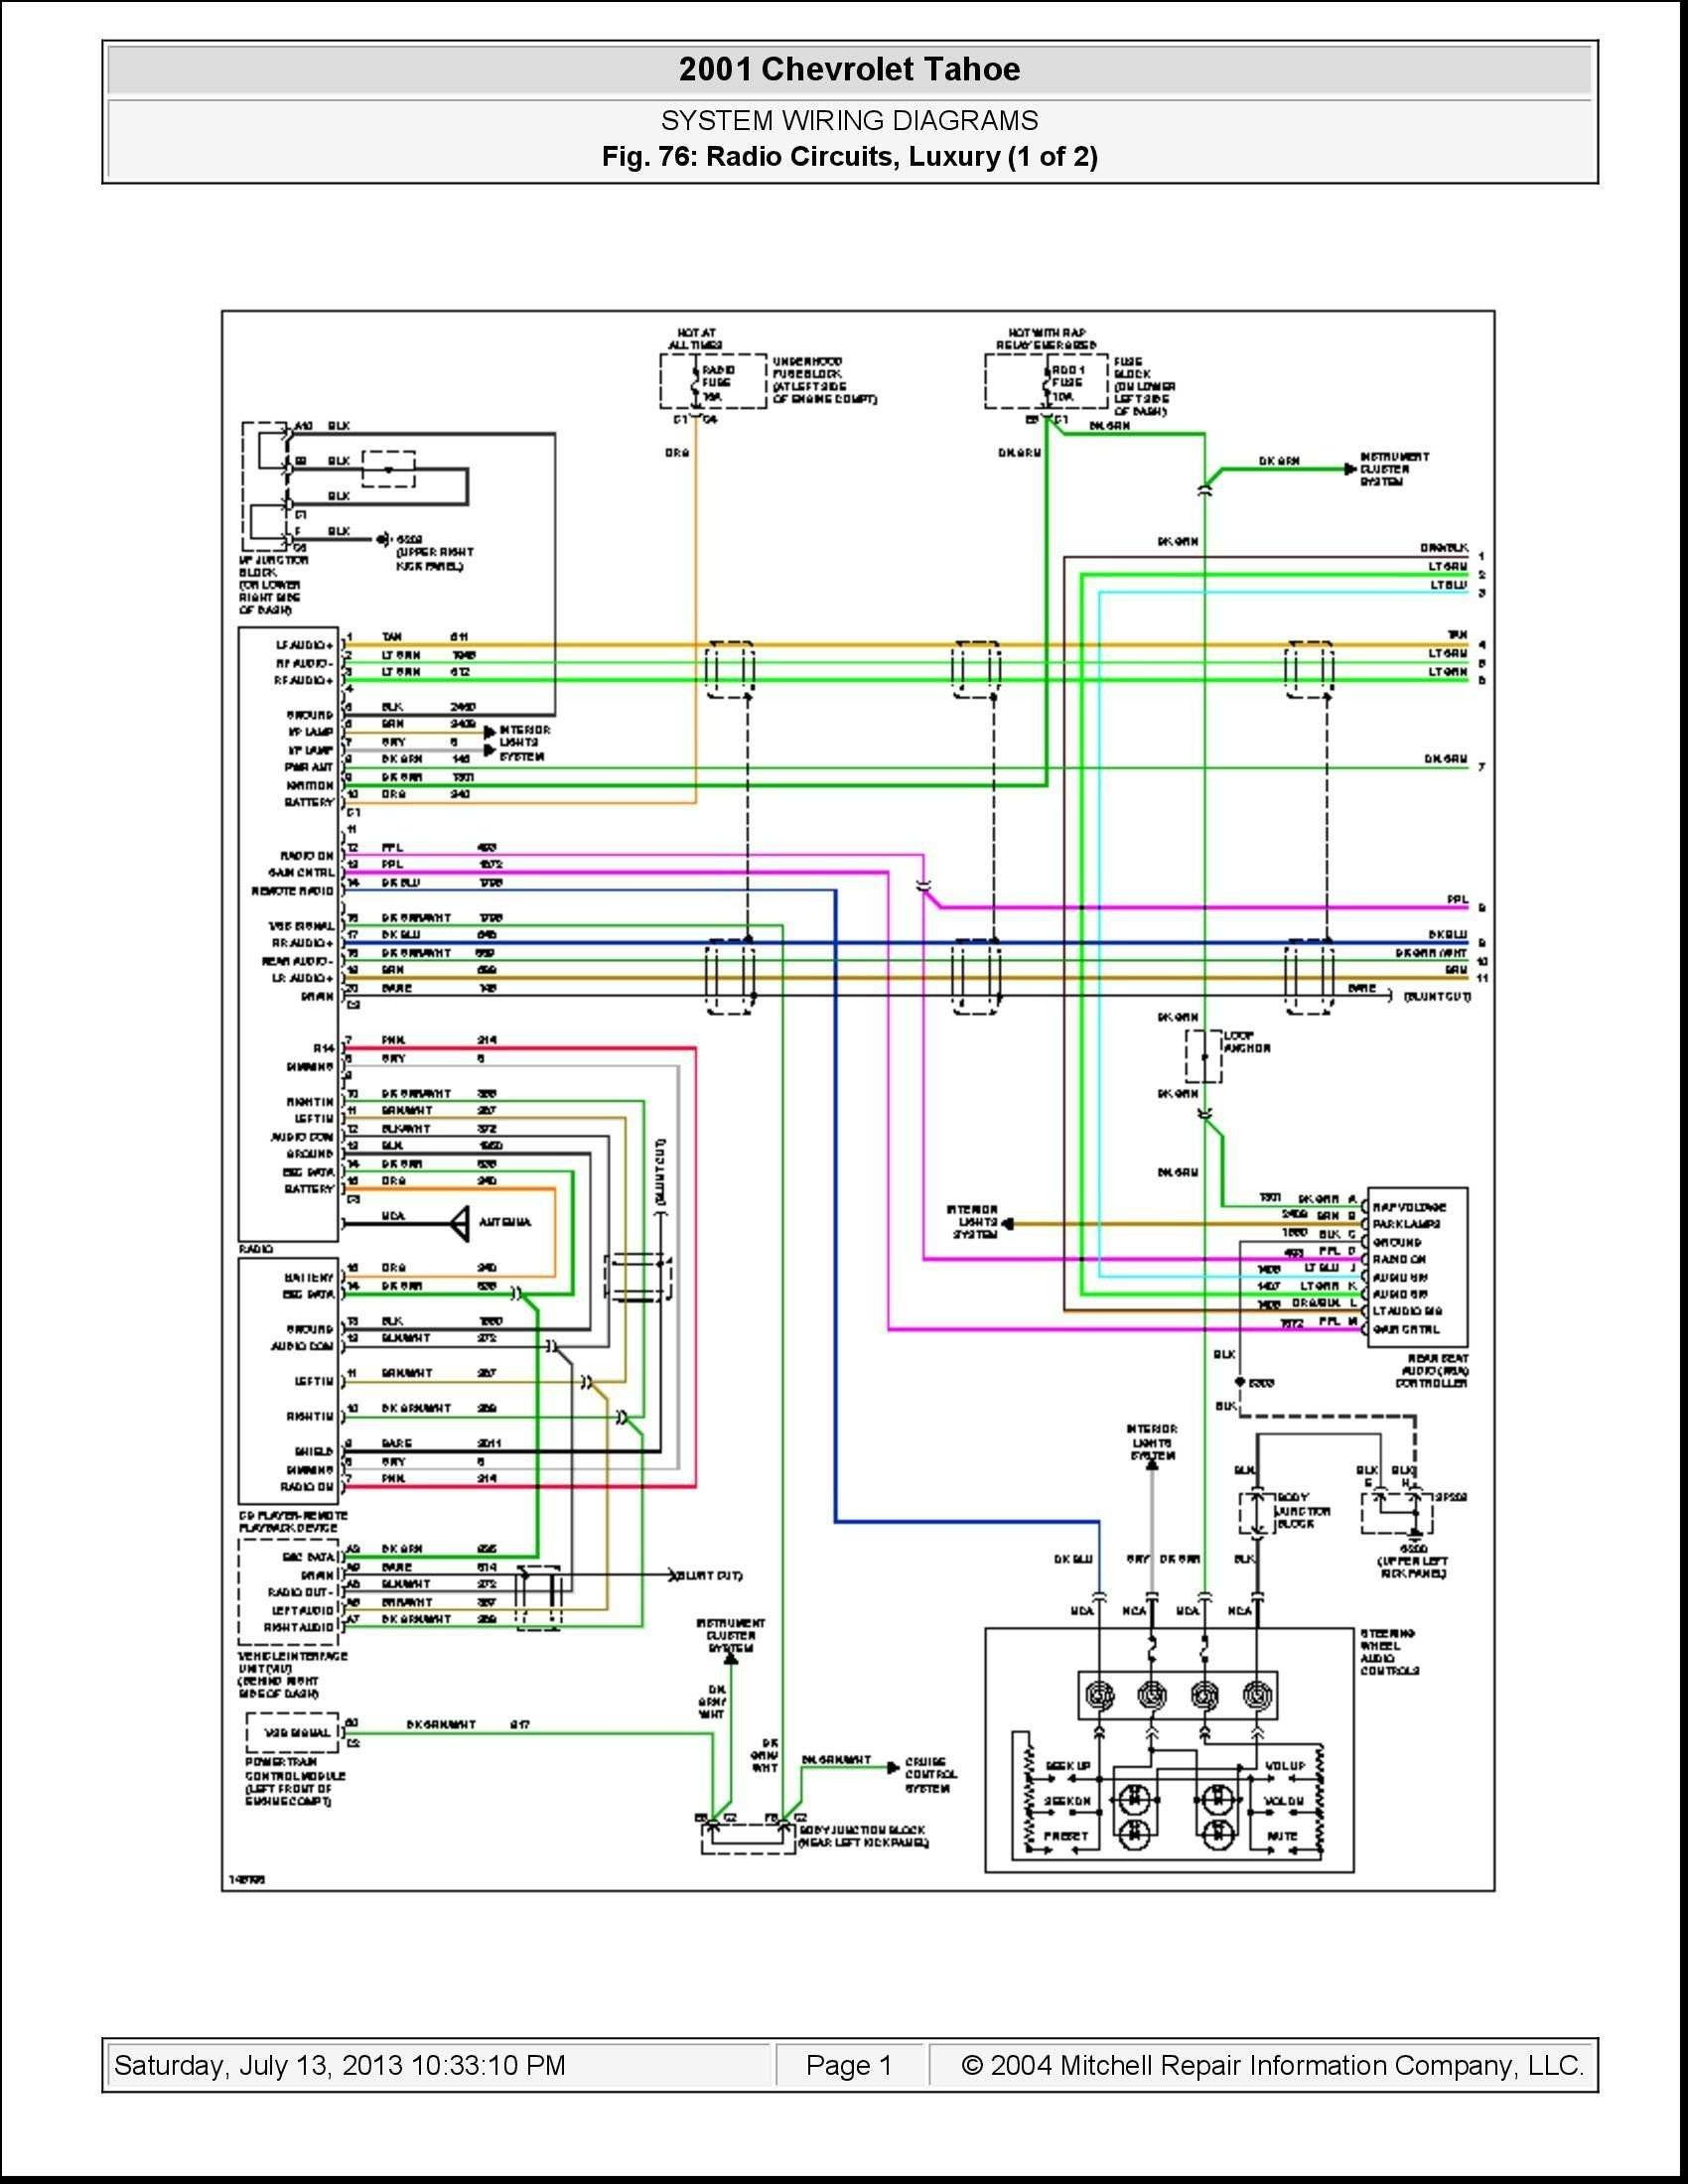 2005 Chevy Truck Wiring Diagram Wiring Diagram Ultimate1 Ultimate1 Musikami It